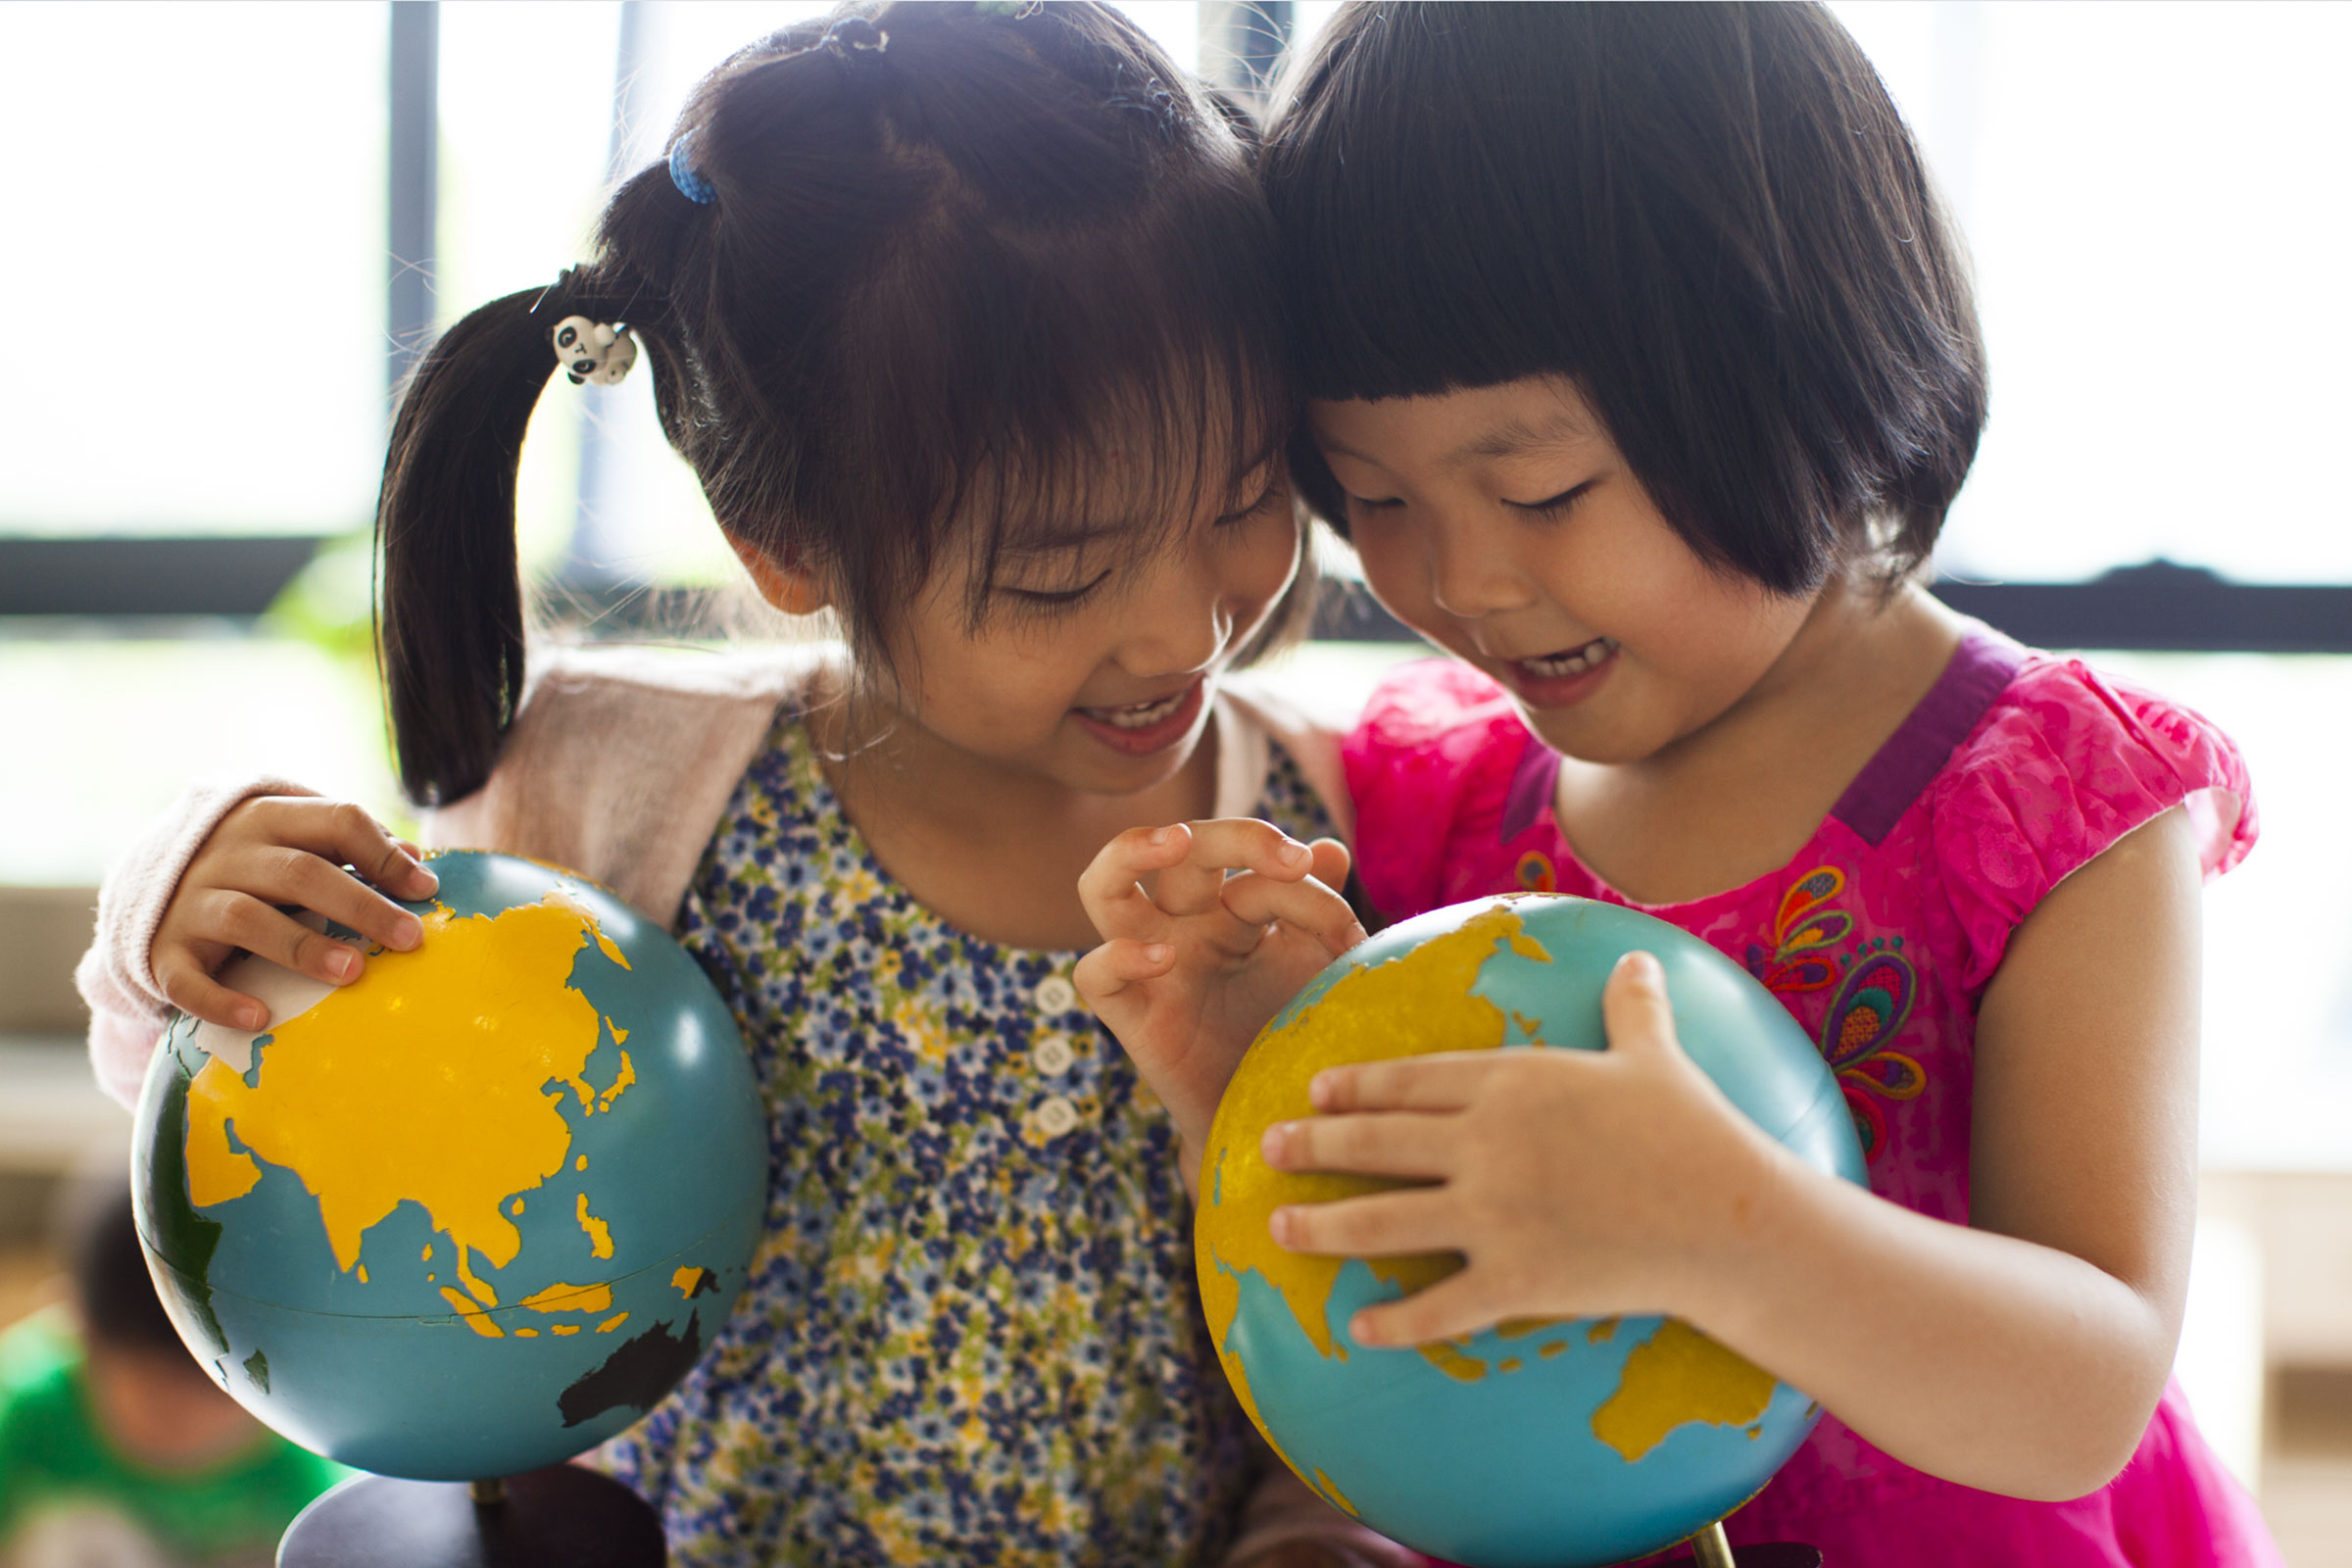 Two children holding globes